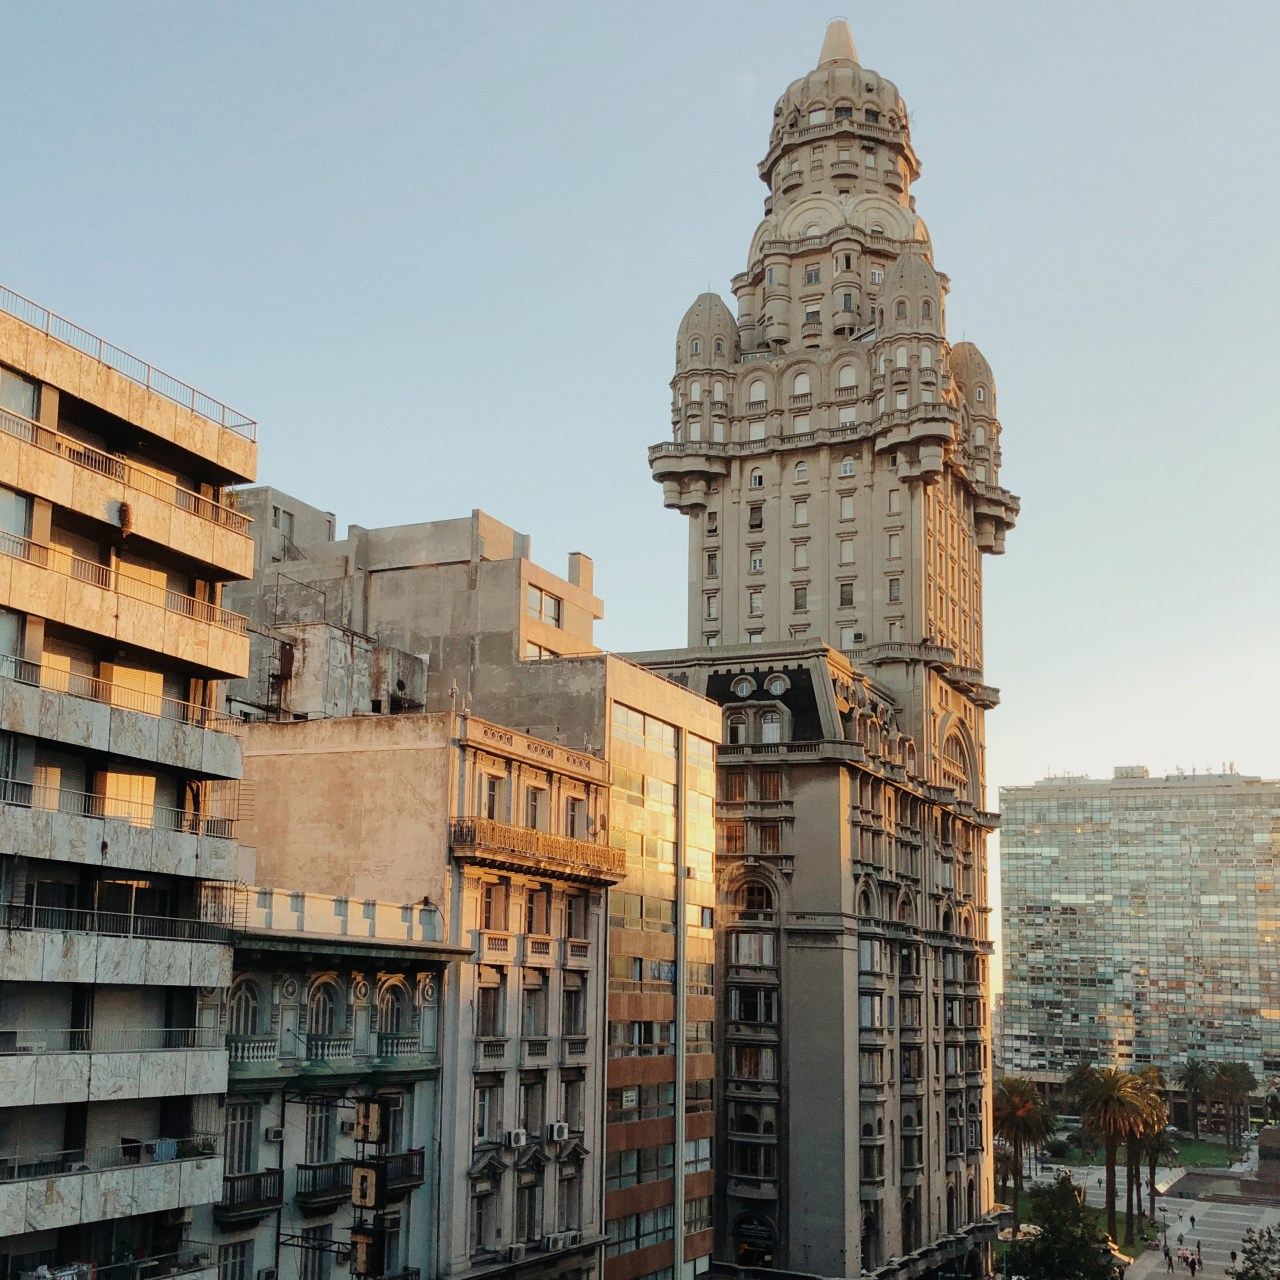 Palacio Salvo sits at the intersection of 18 de Julio Avenue and Plaza Independencia in Montevideo.